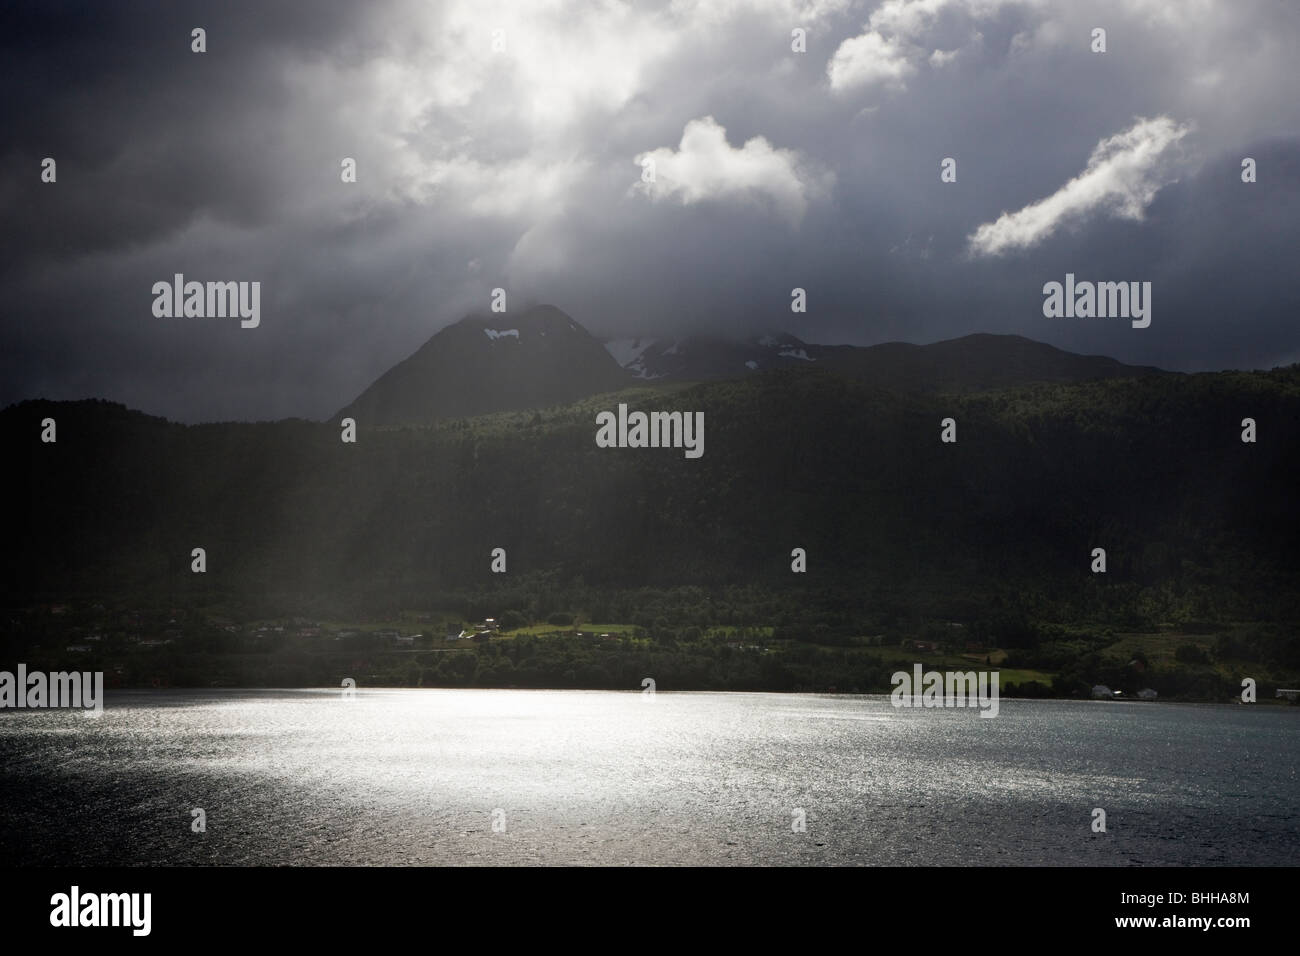 A fiord in Norway. - Stock Image